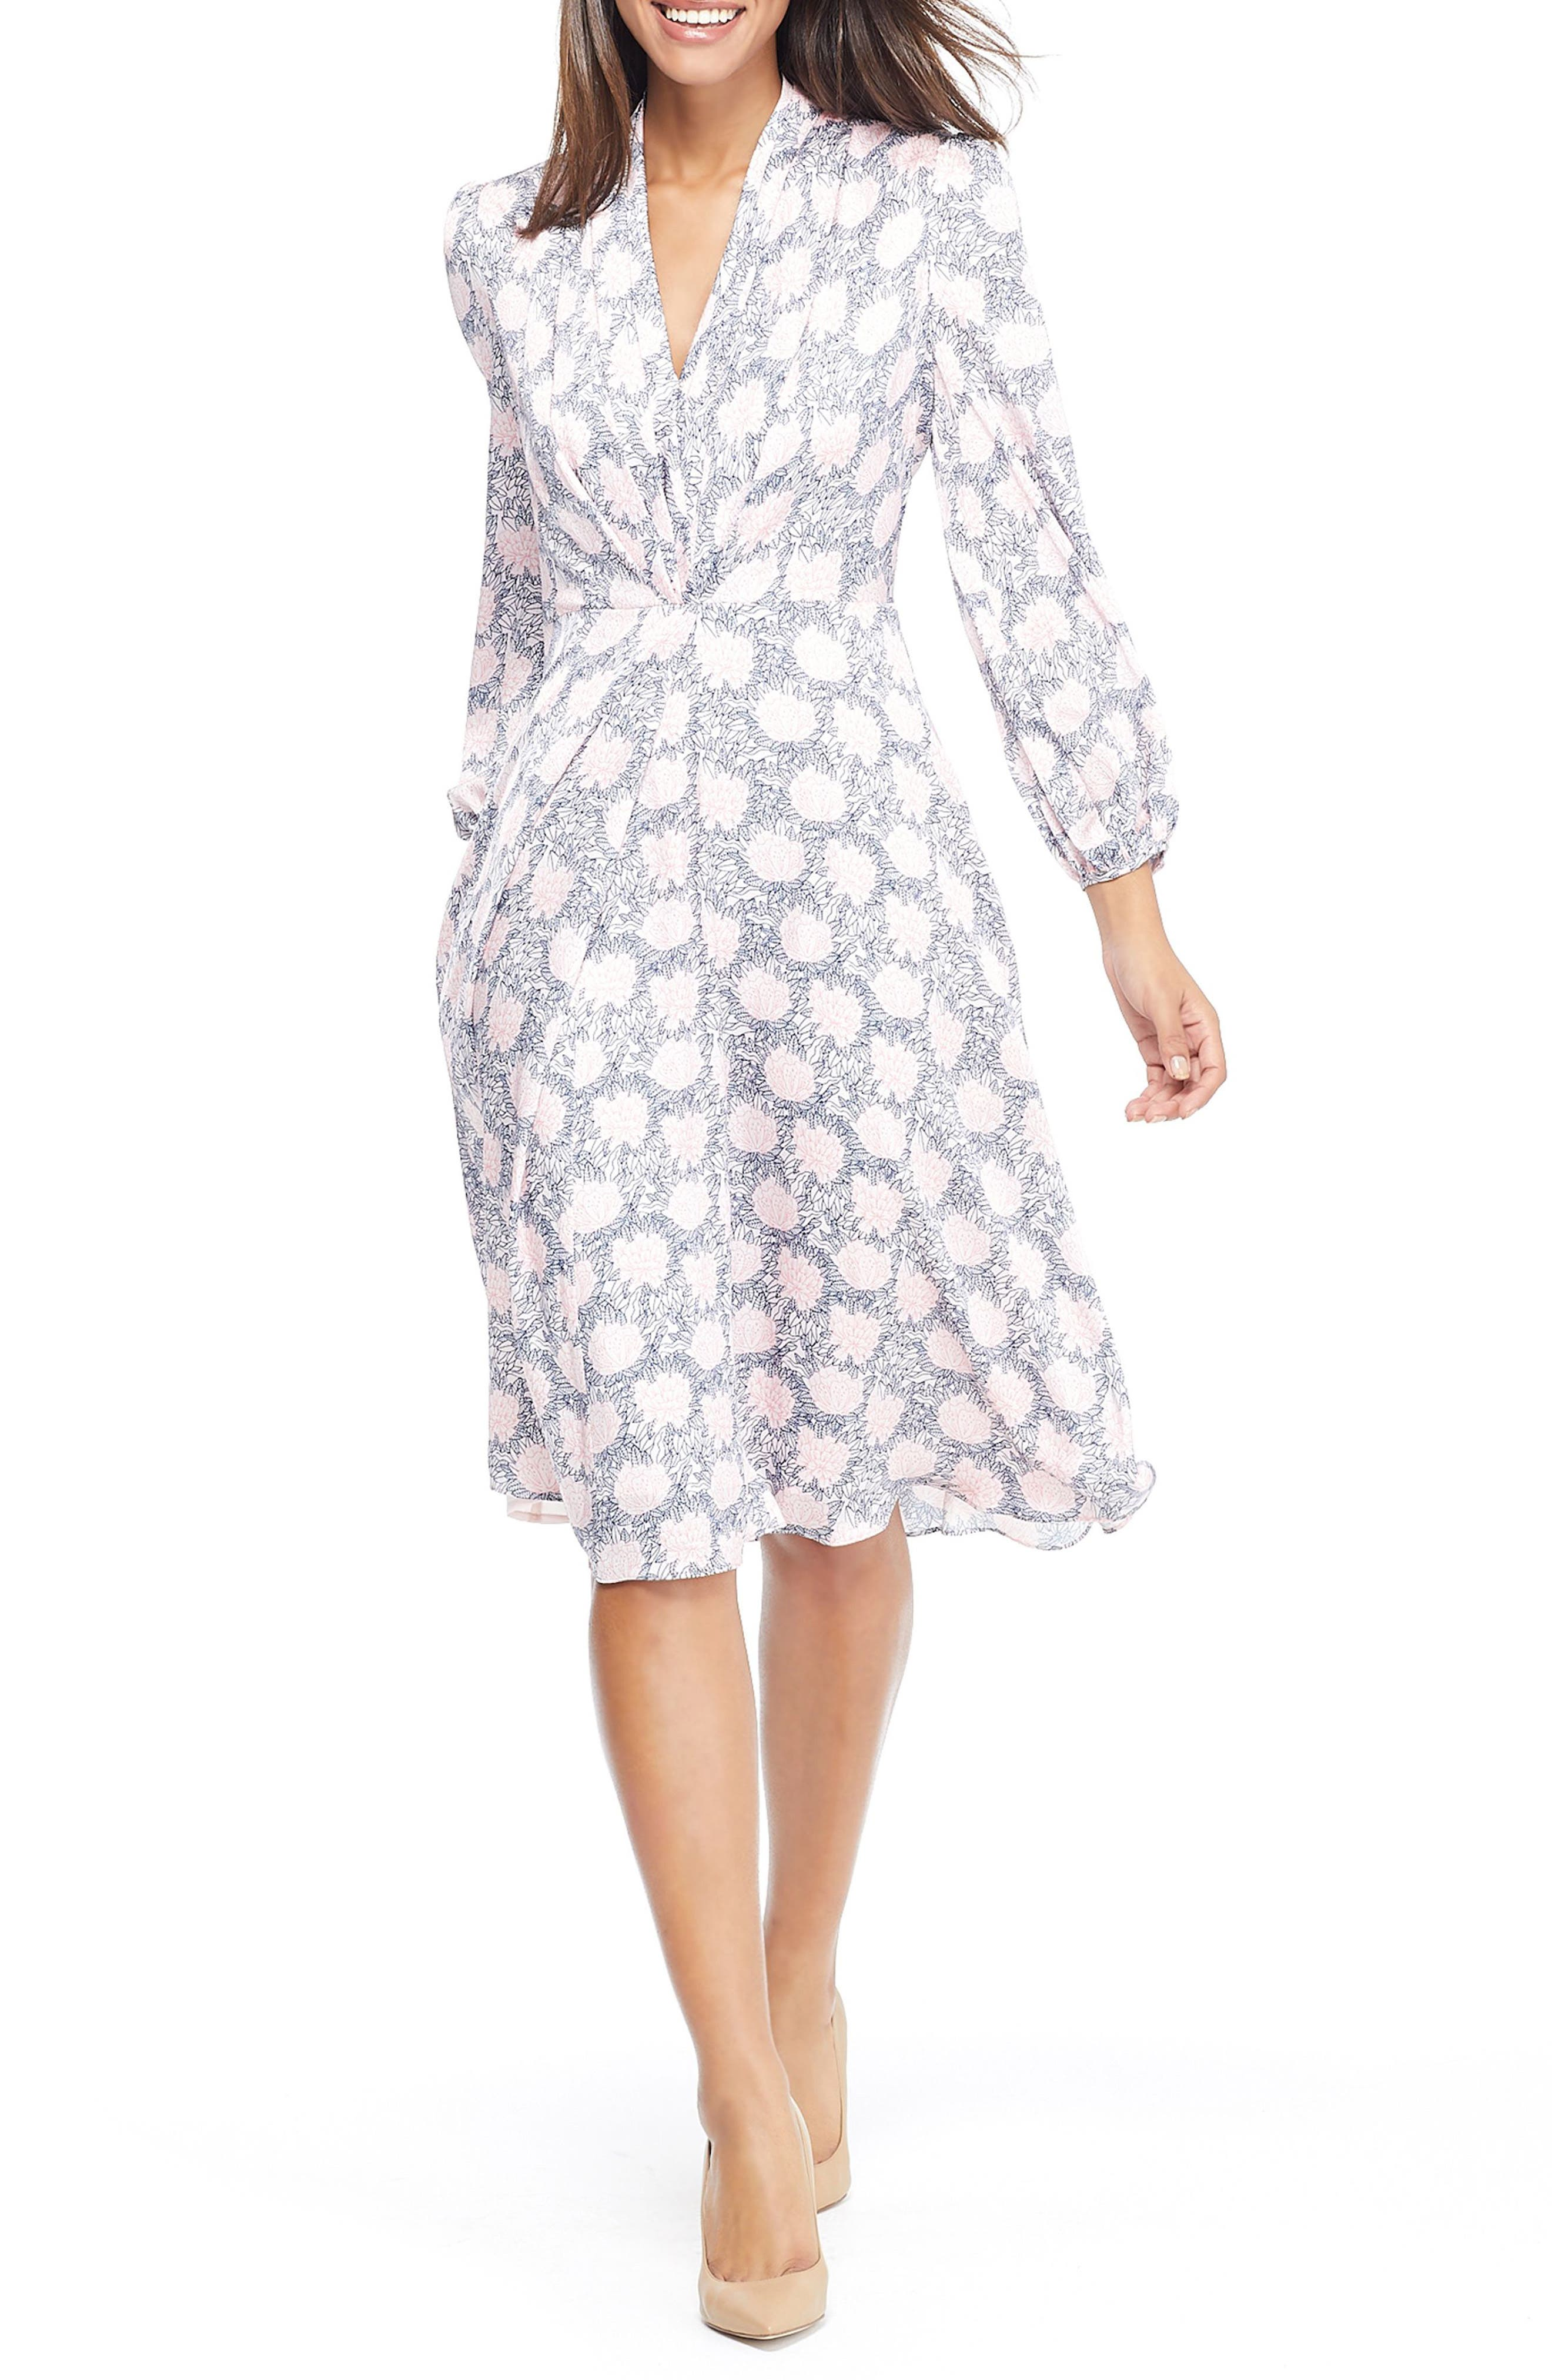 GAL MEETS GLAM COLLECTION, Lizzie Floral Dress, Main thumbnail 1, color, 697